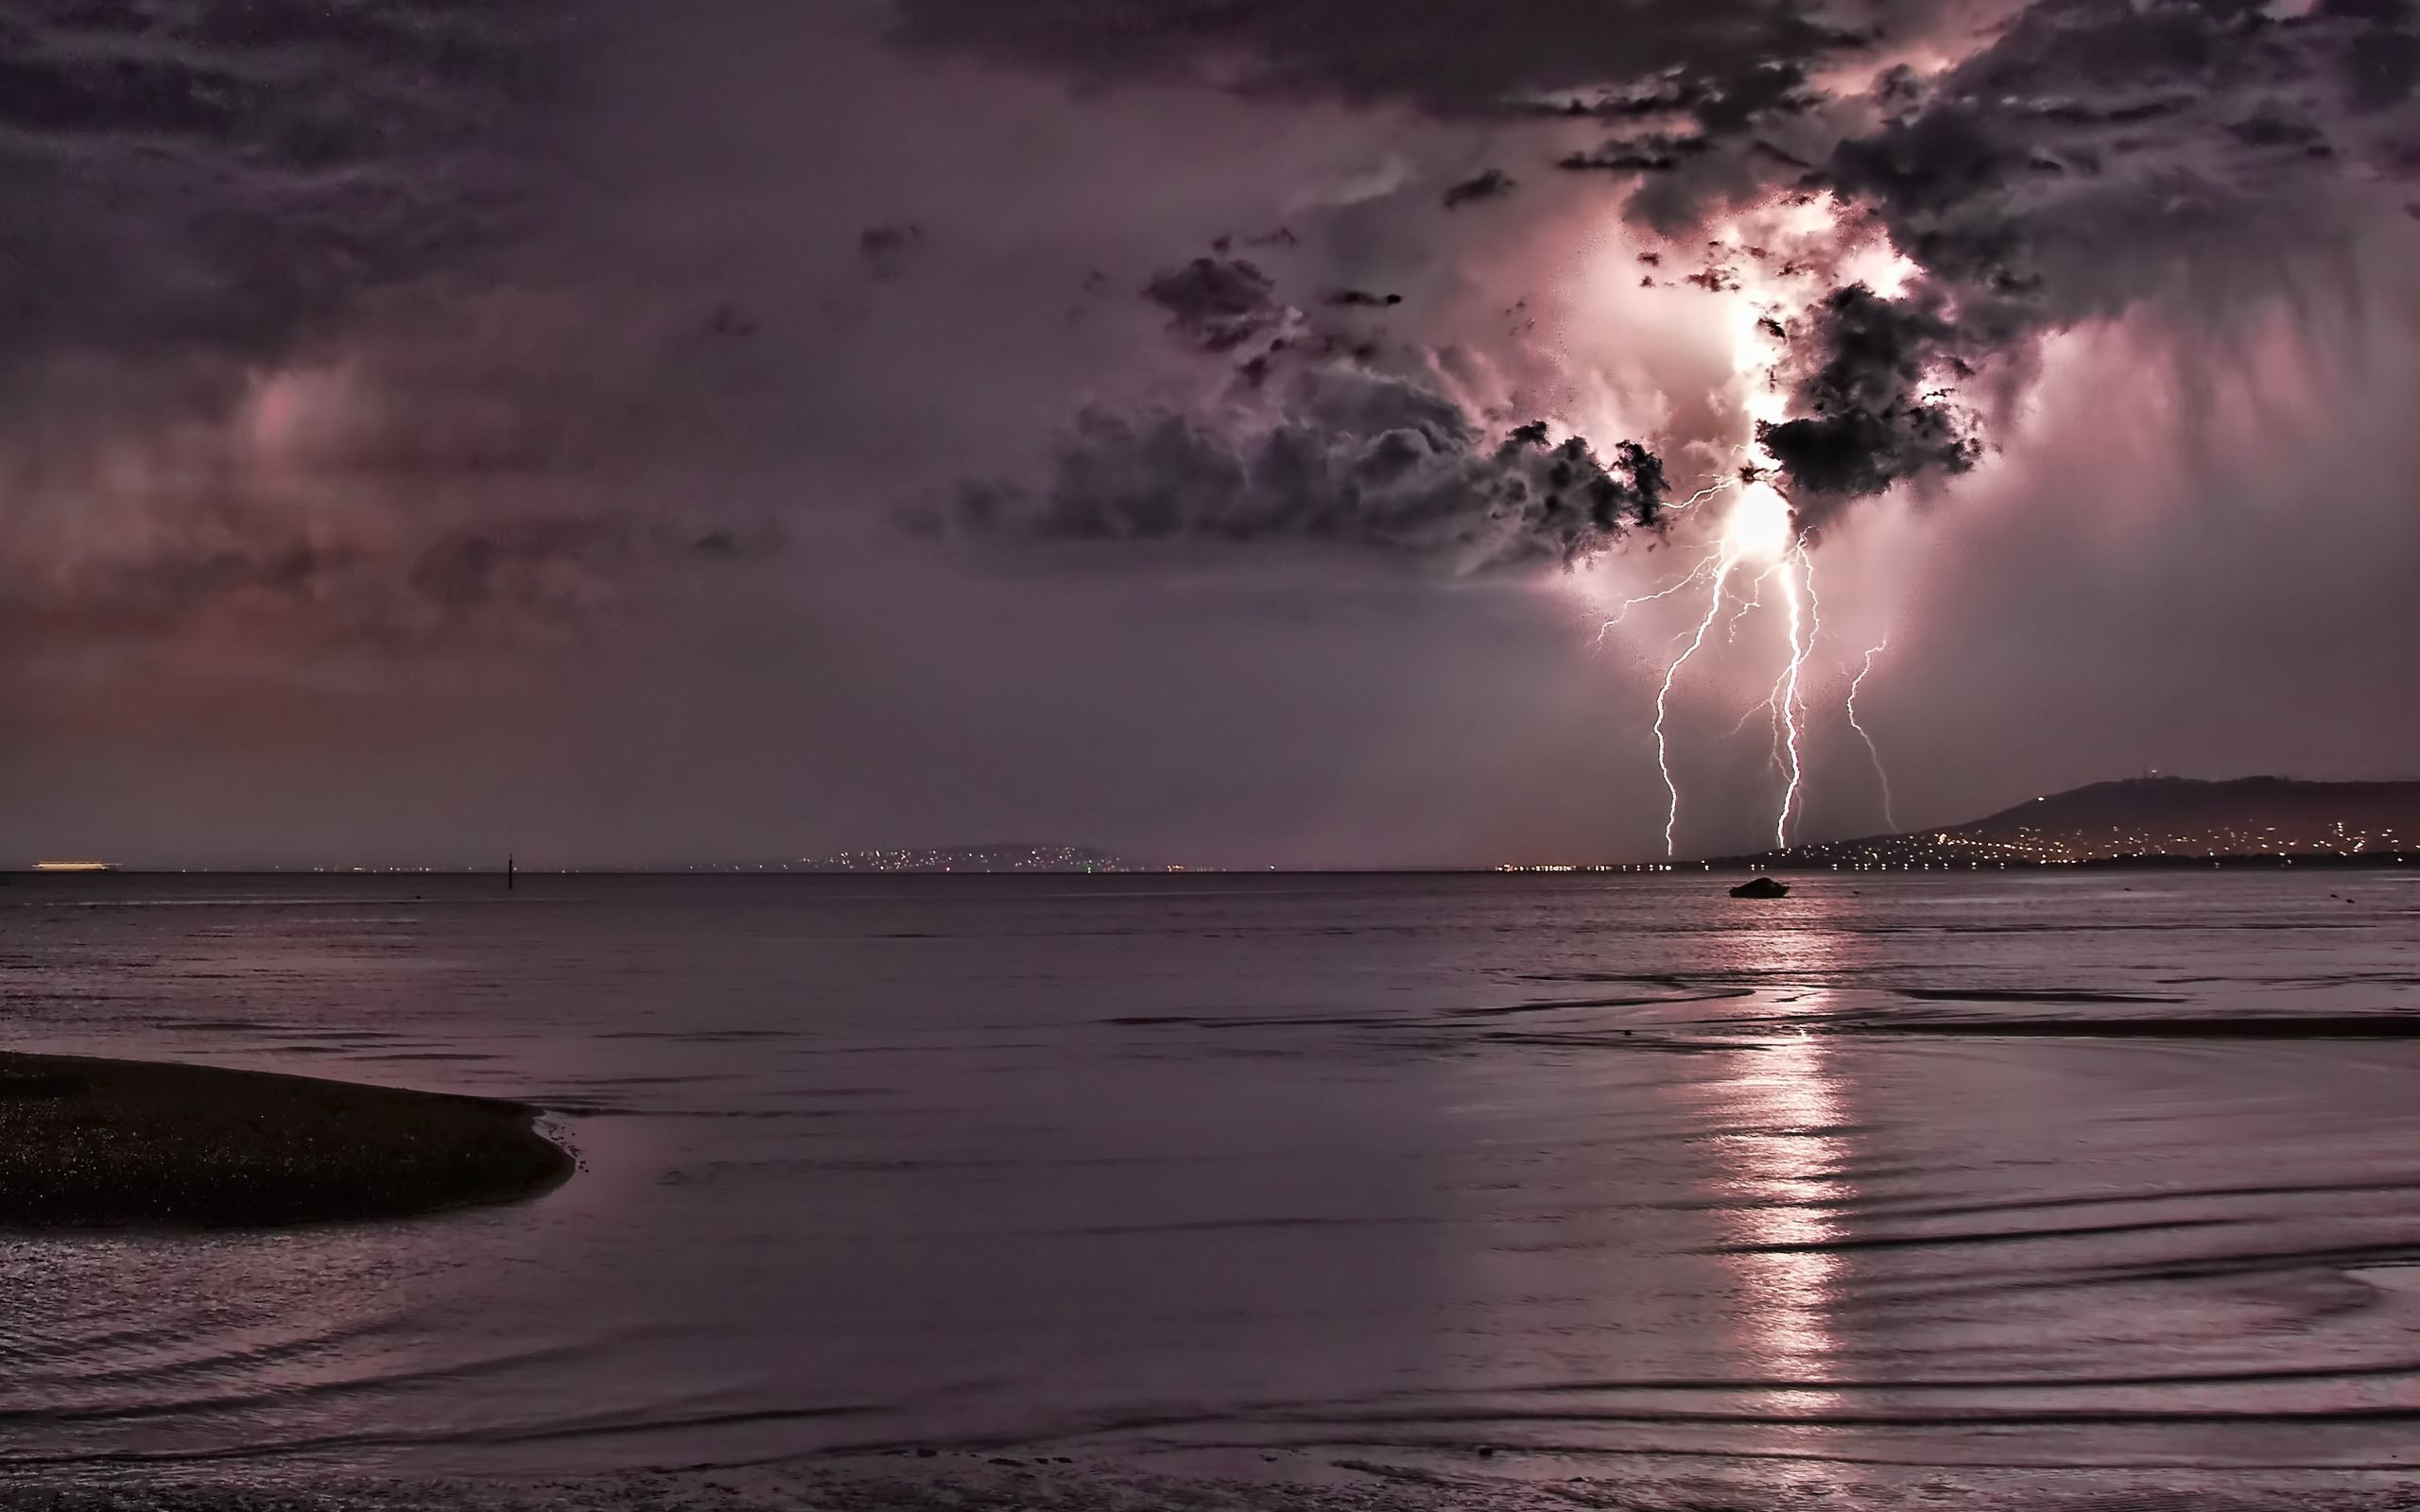 Wallpapers ⇒ Landscape ⇒ Thunderstorm Wallpaper